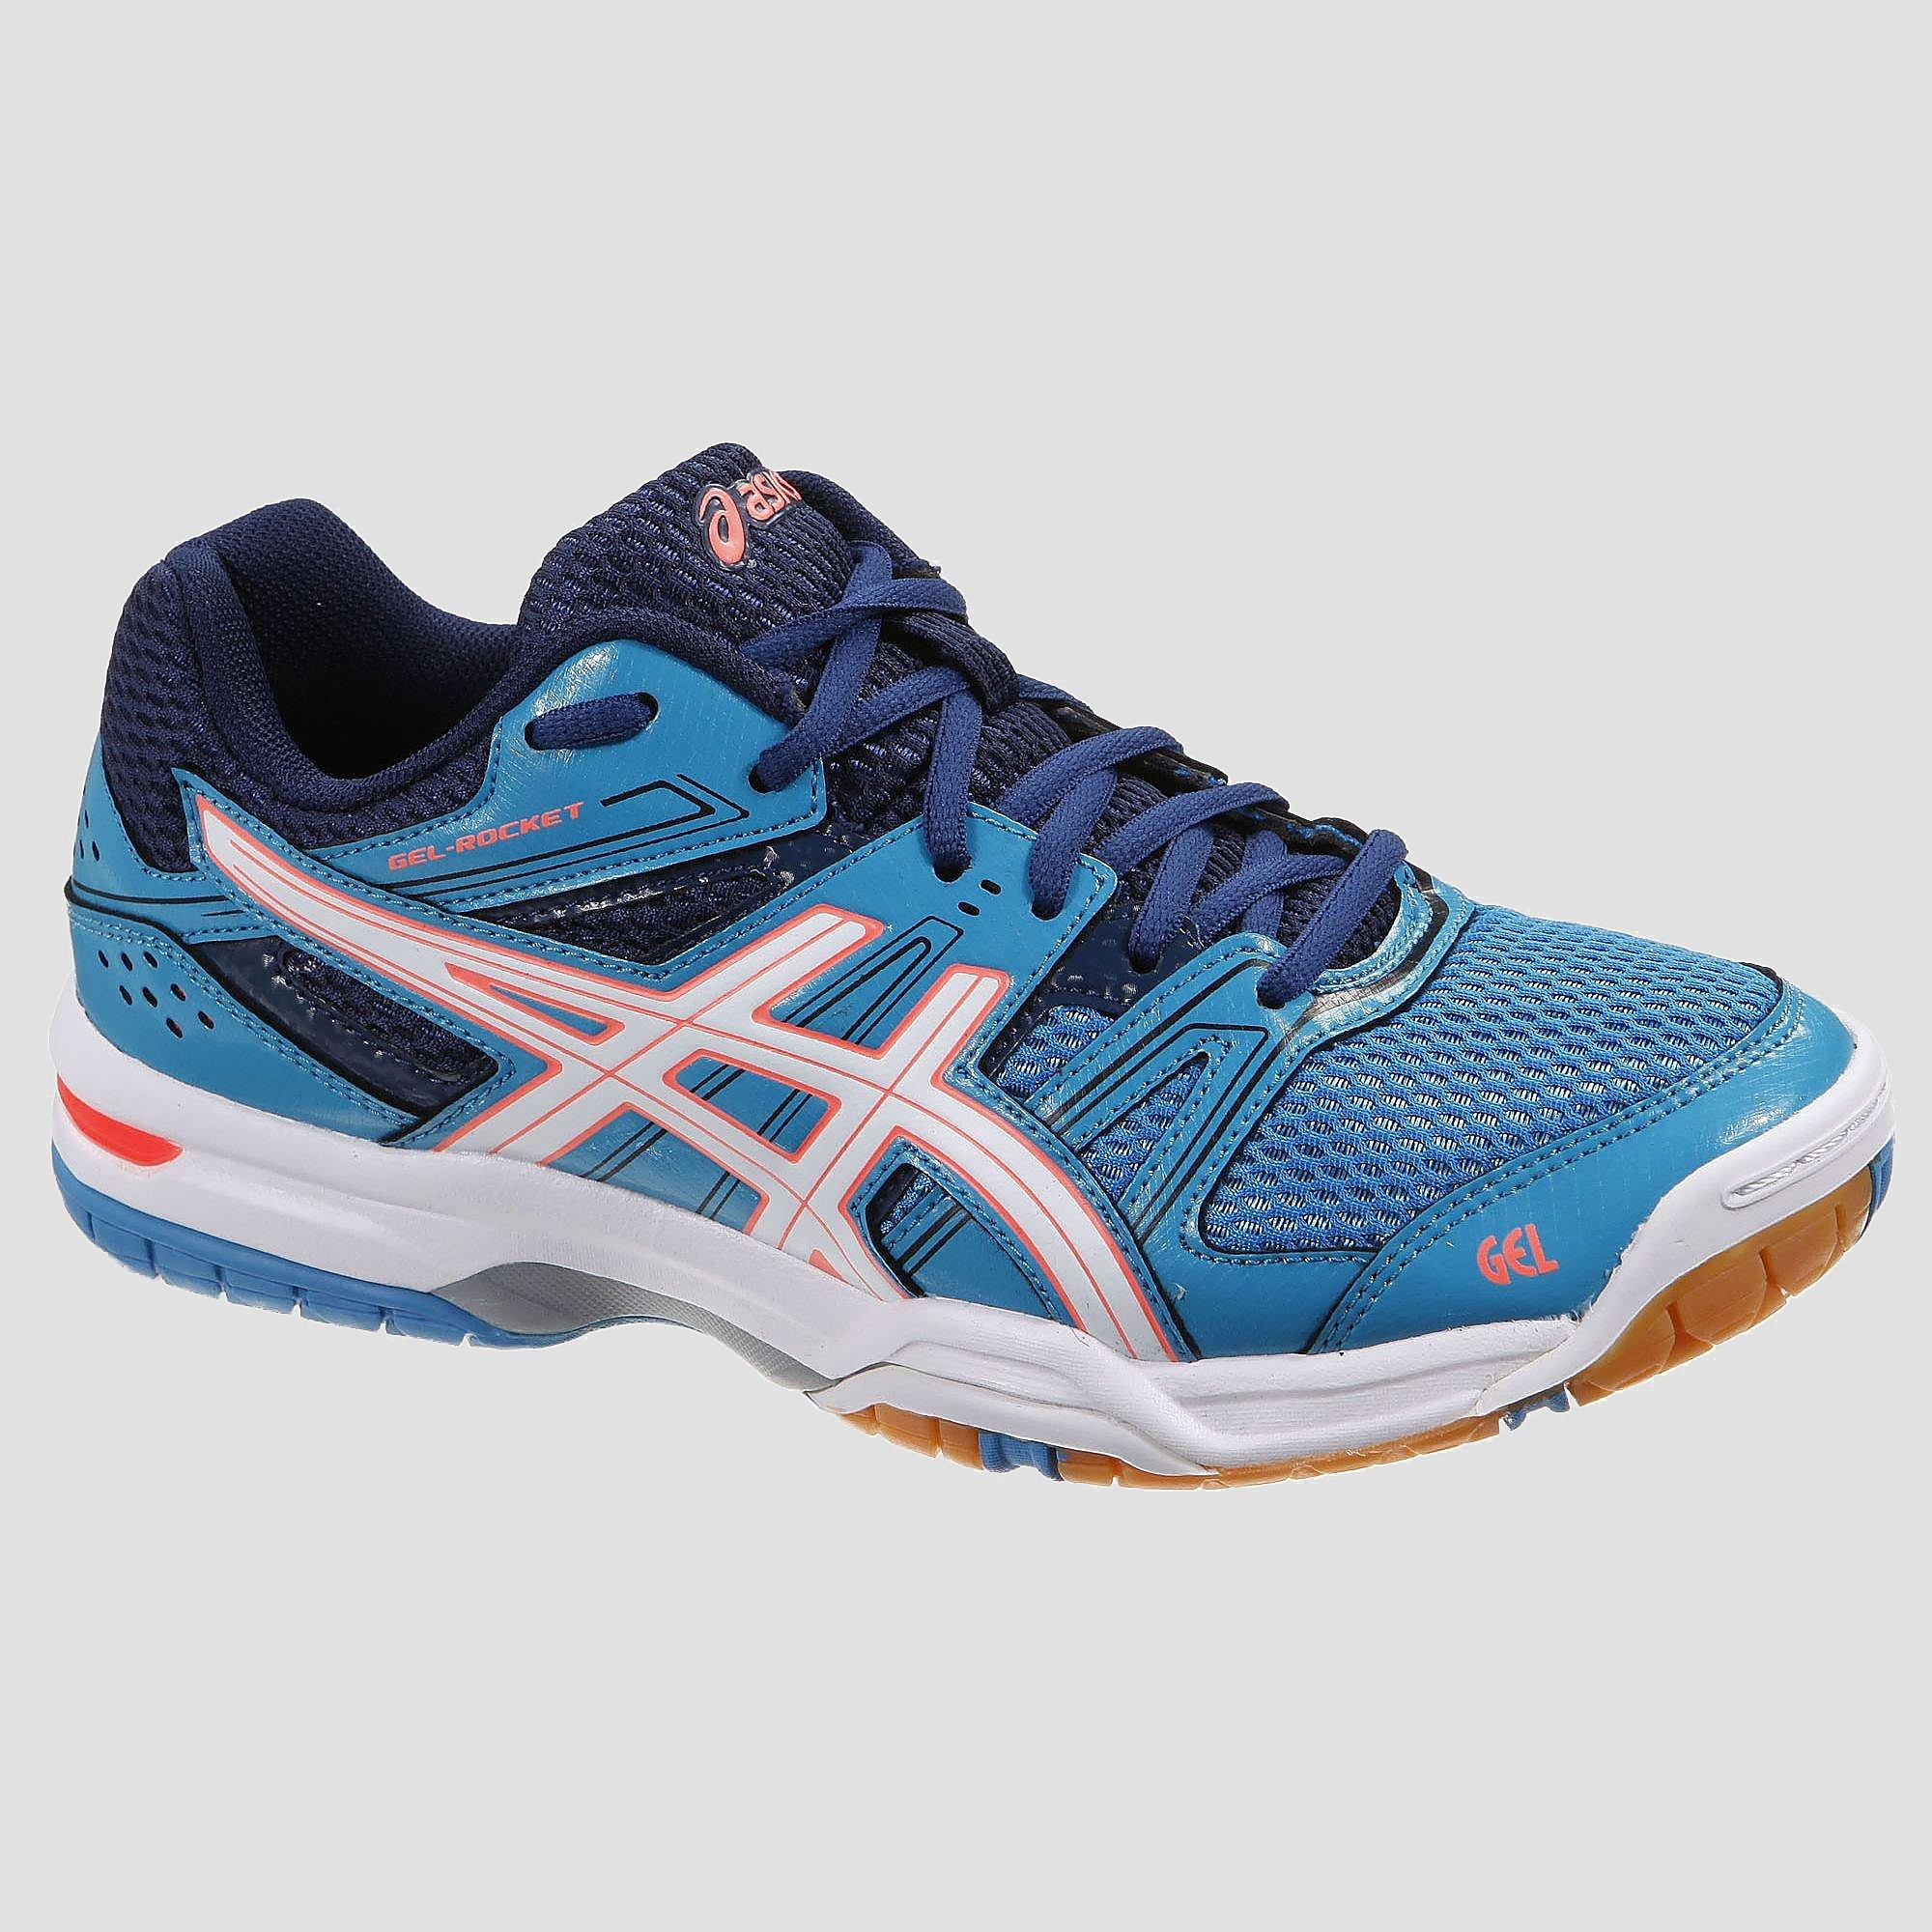 ASICS GEL-ROCKET 7 VOLLEYBALSCHOENEN BLAUW DAMES